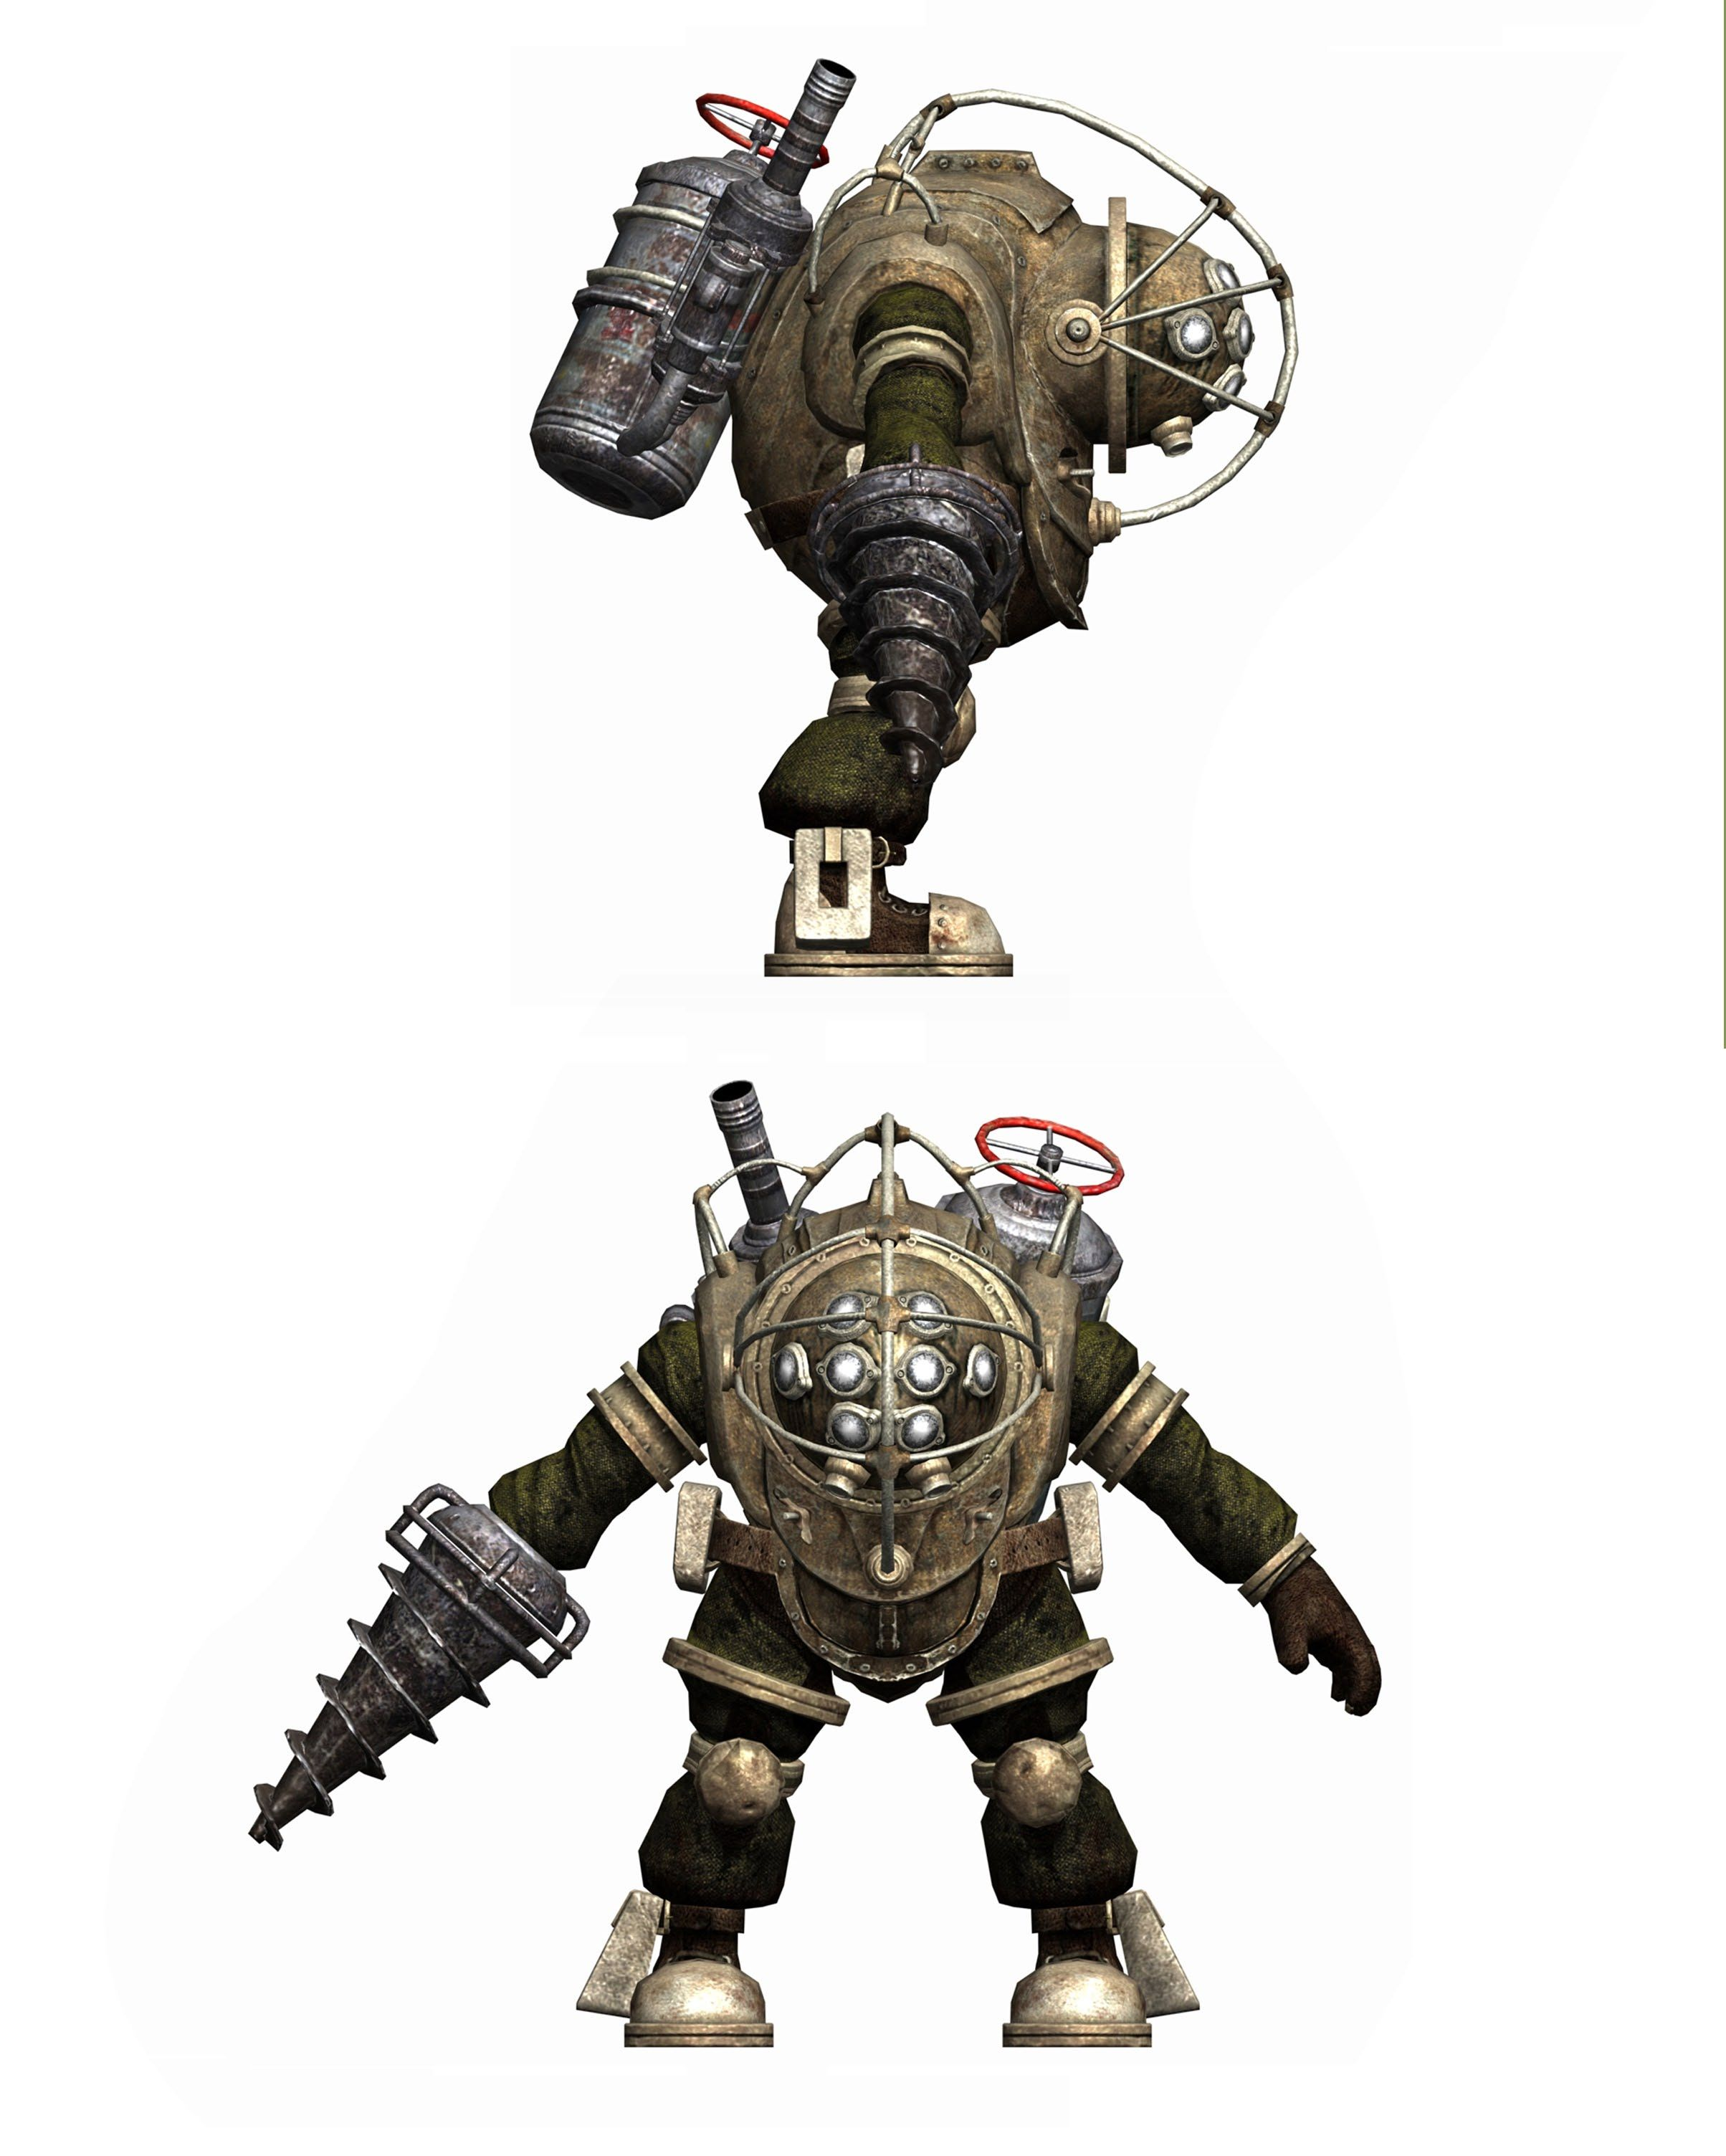 Pin by Nikotomia on Bioshock concept art Concept art